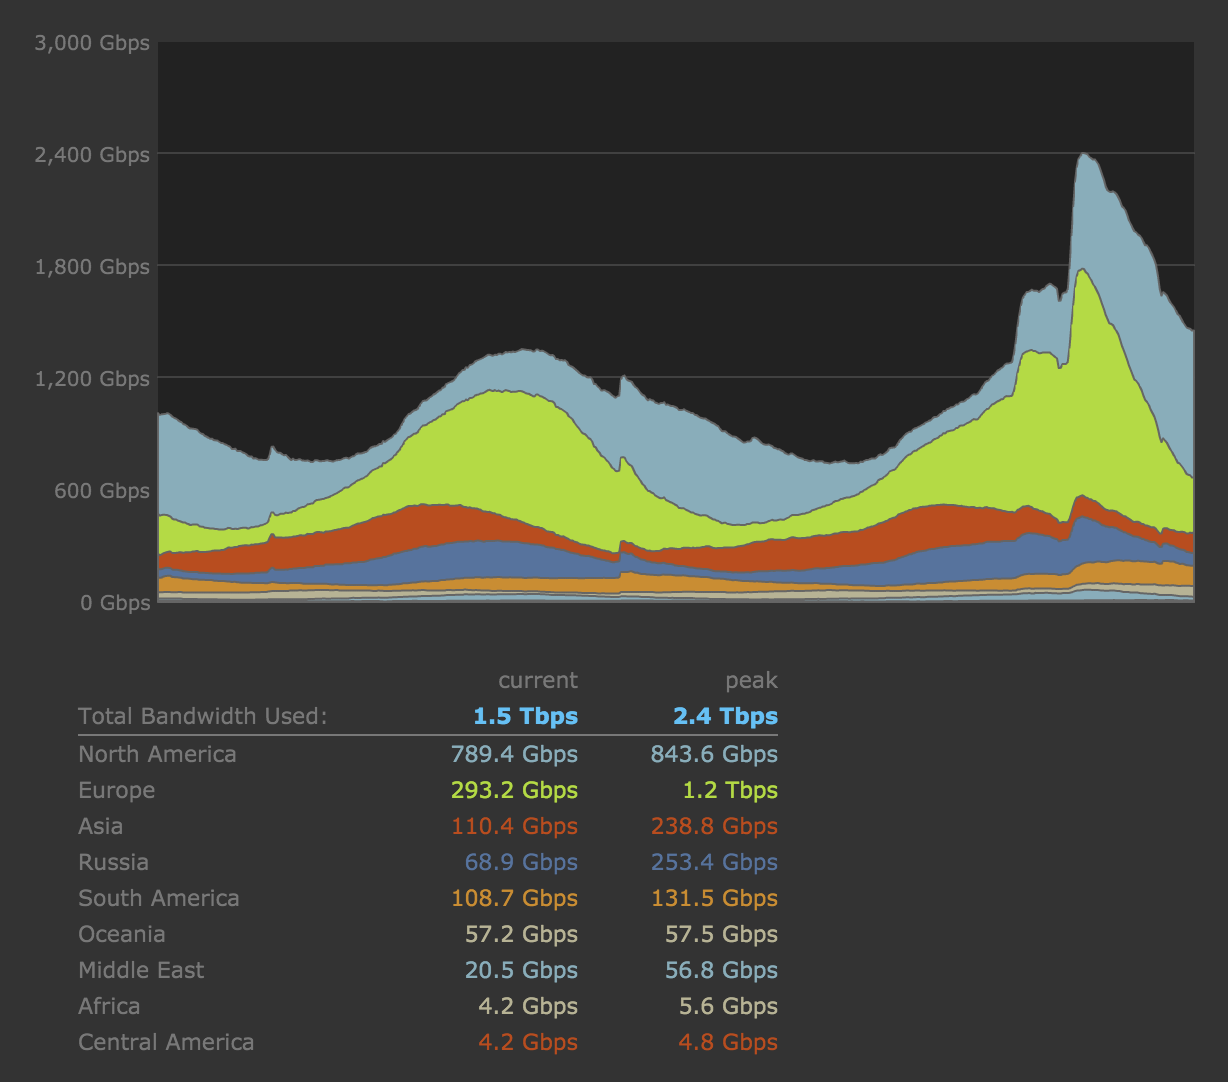 http://www.techspot.com/news/63486-valve-adds-more-100-gbps-pipes-handle-significant.html